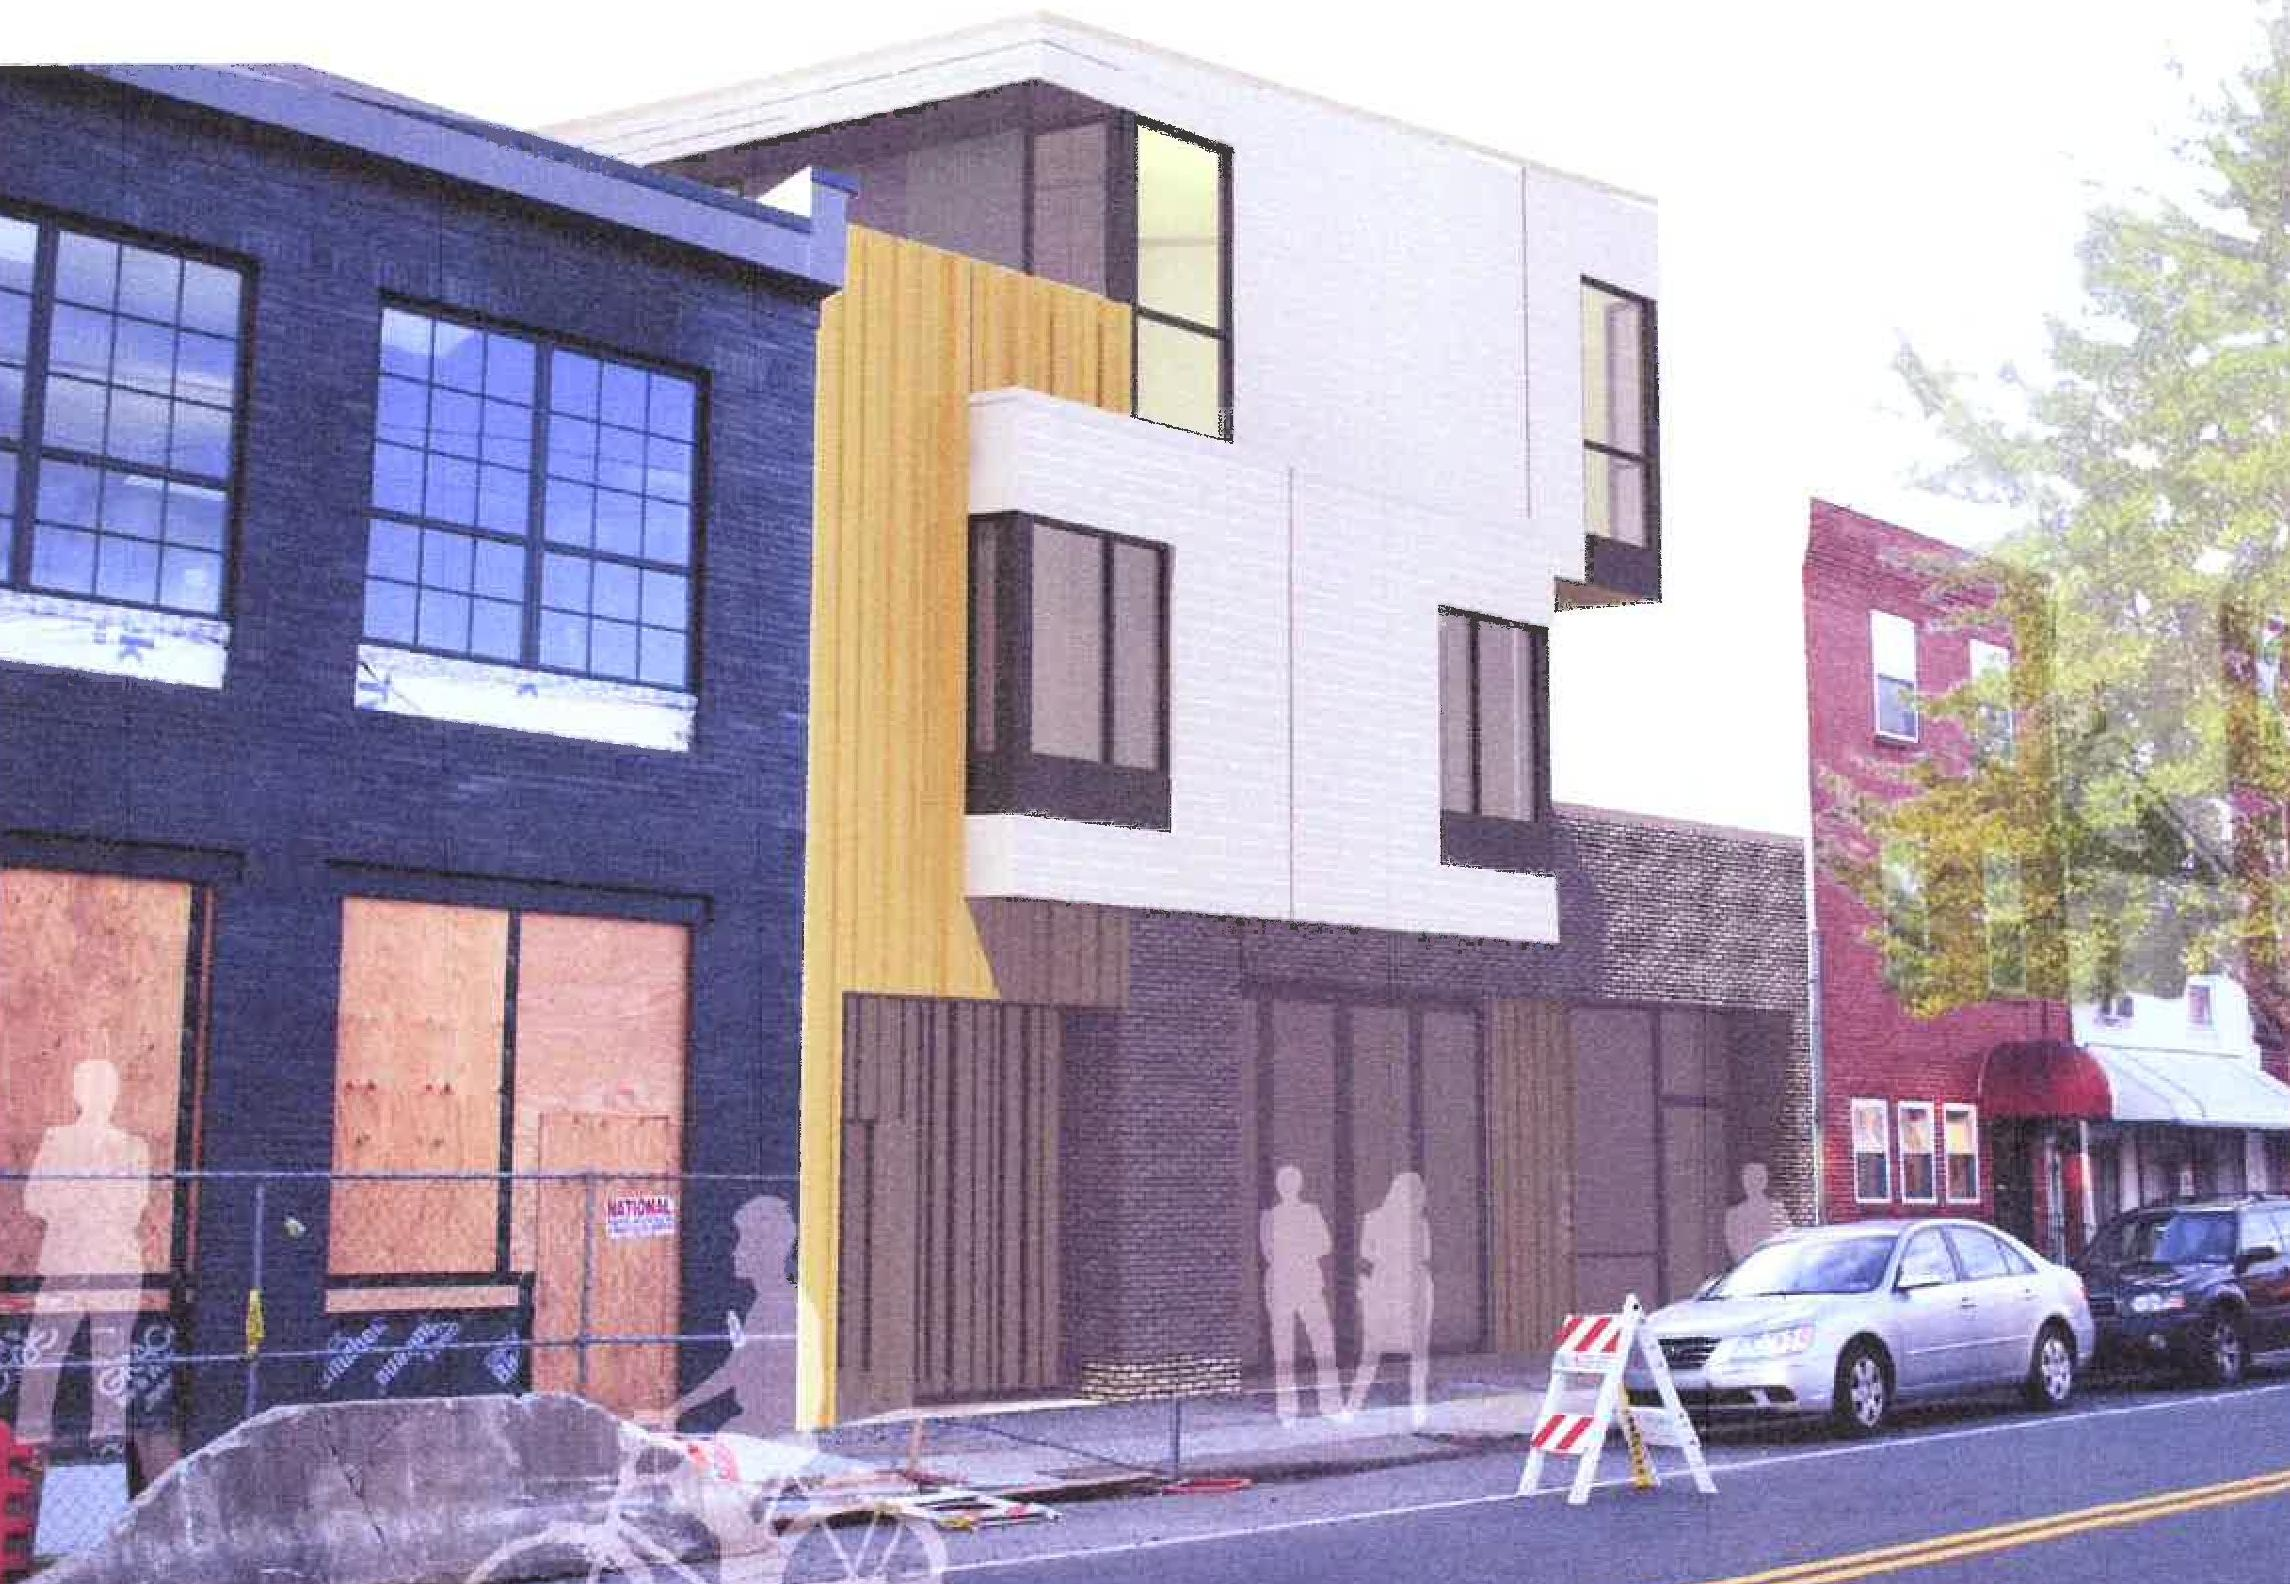 Project rendering. Image from Myphillykind.